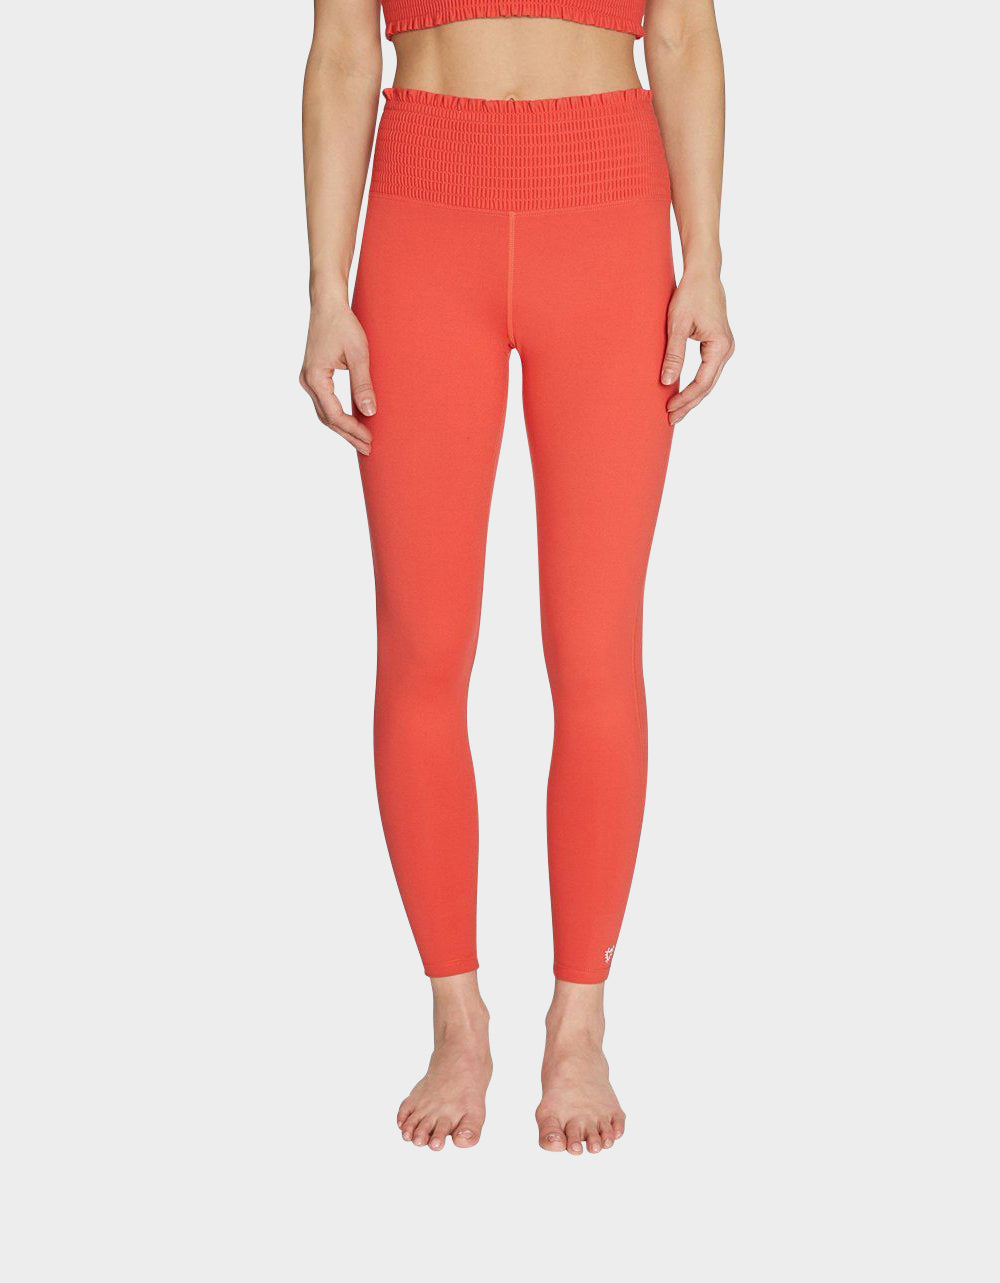 SMOCKED WAIST HIGH RISE LEGGING CORAL - APPAREL - Betsey Johnson